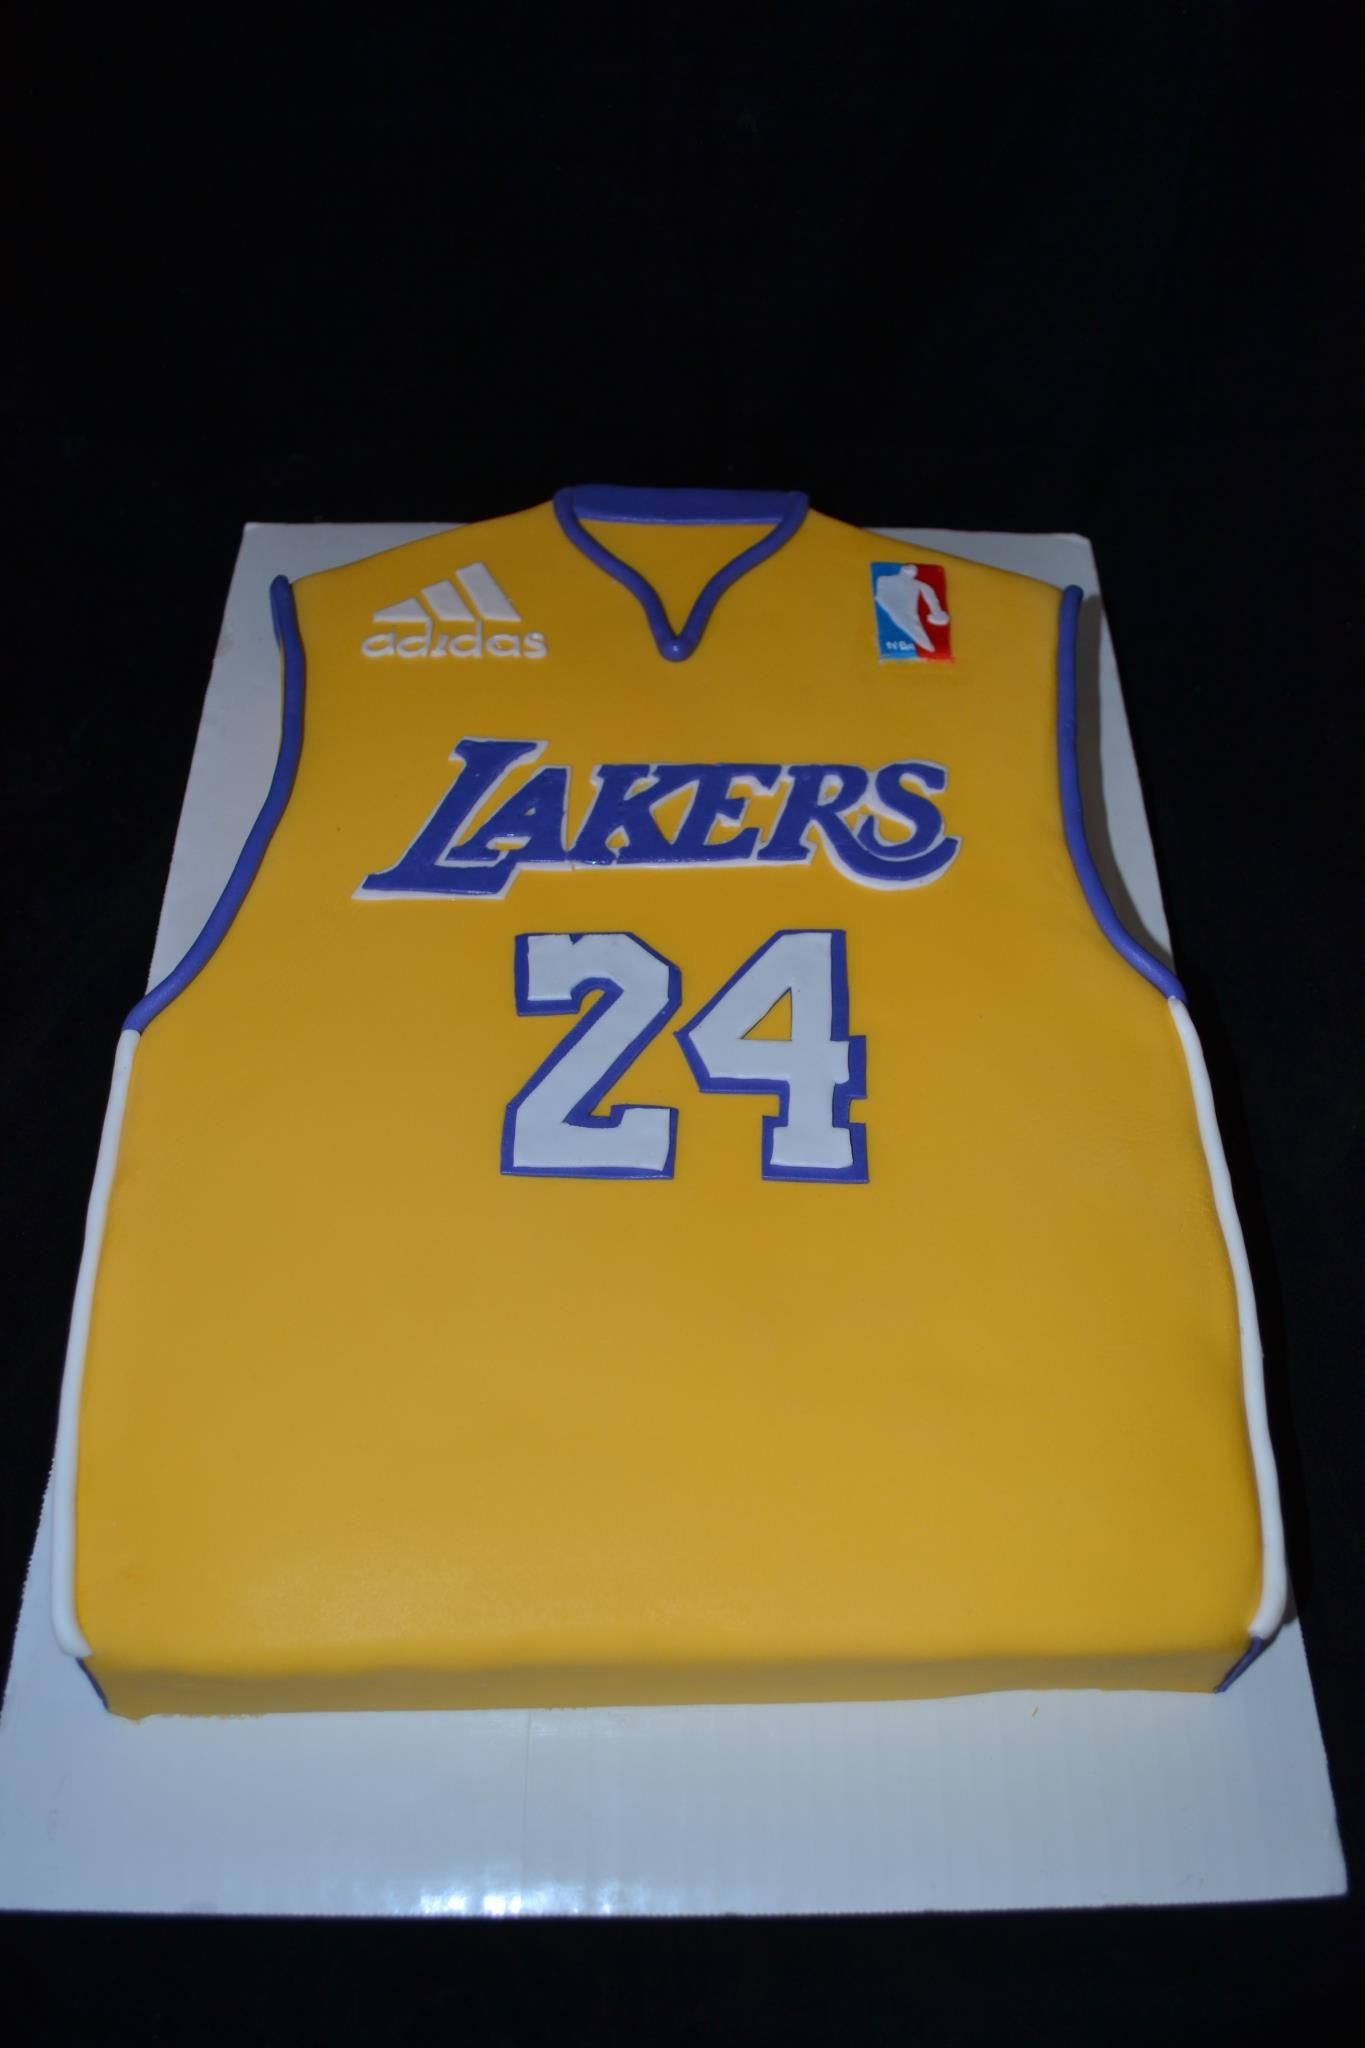 Lakers Cake My Cakes Pinterest Cake 18th Cake And Cake Cookies